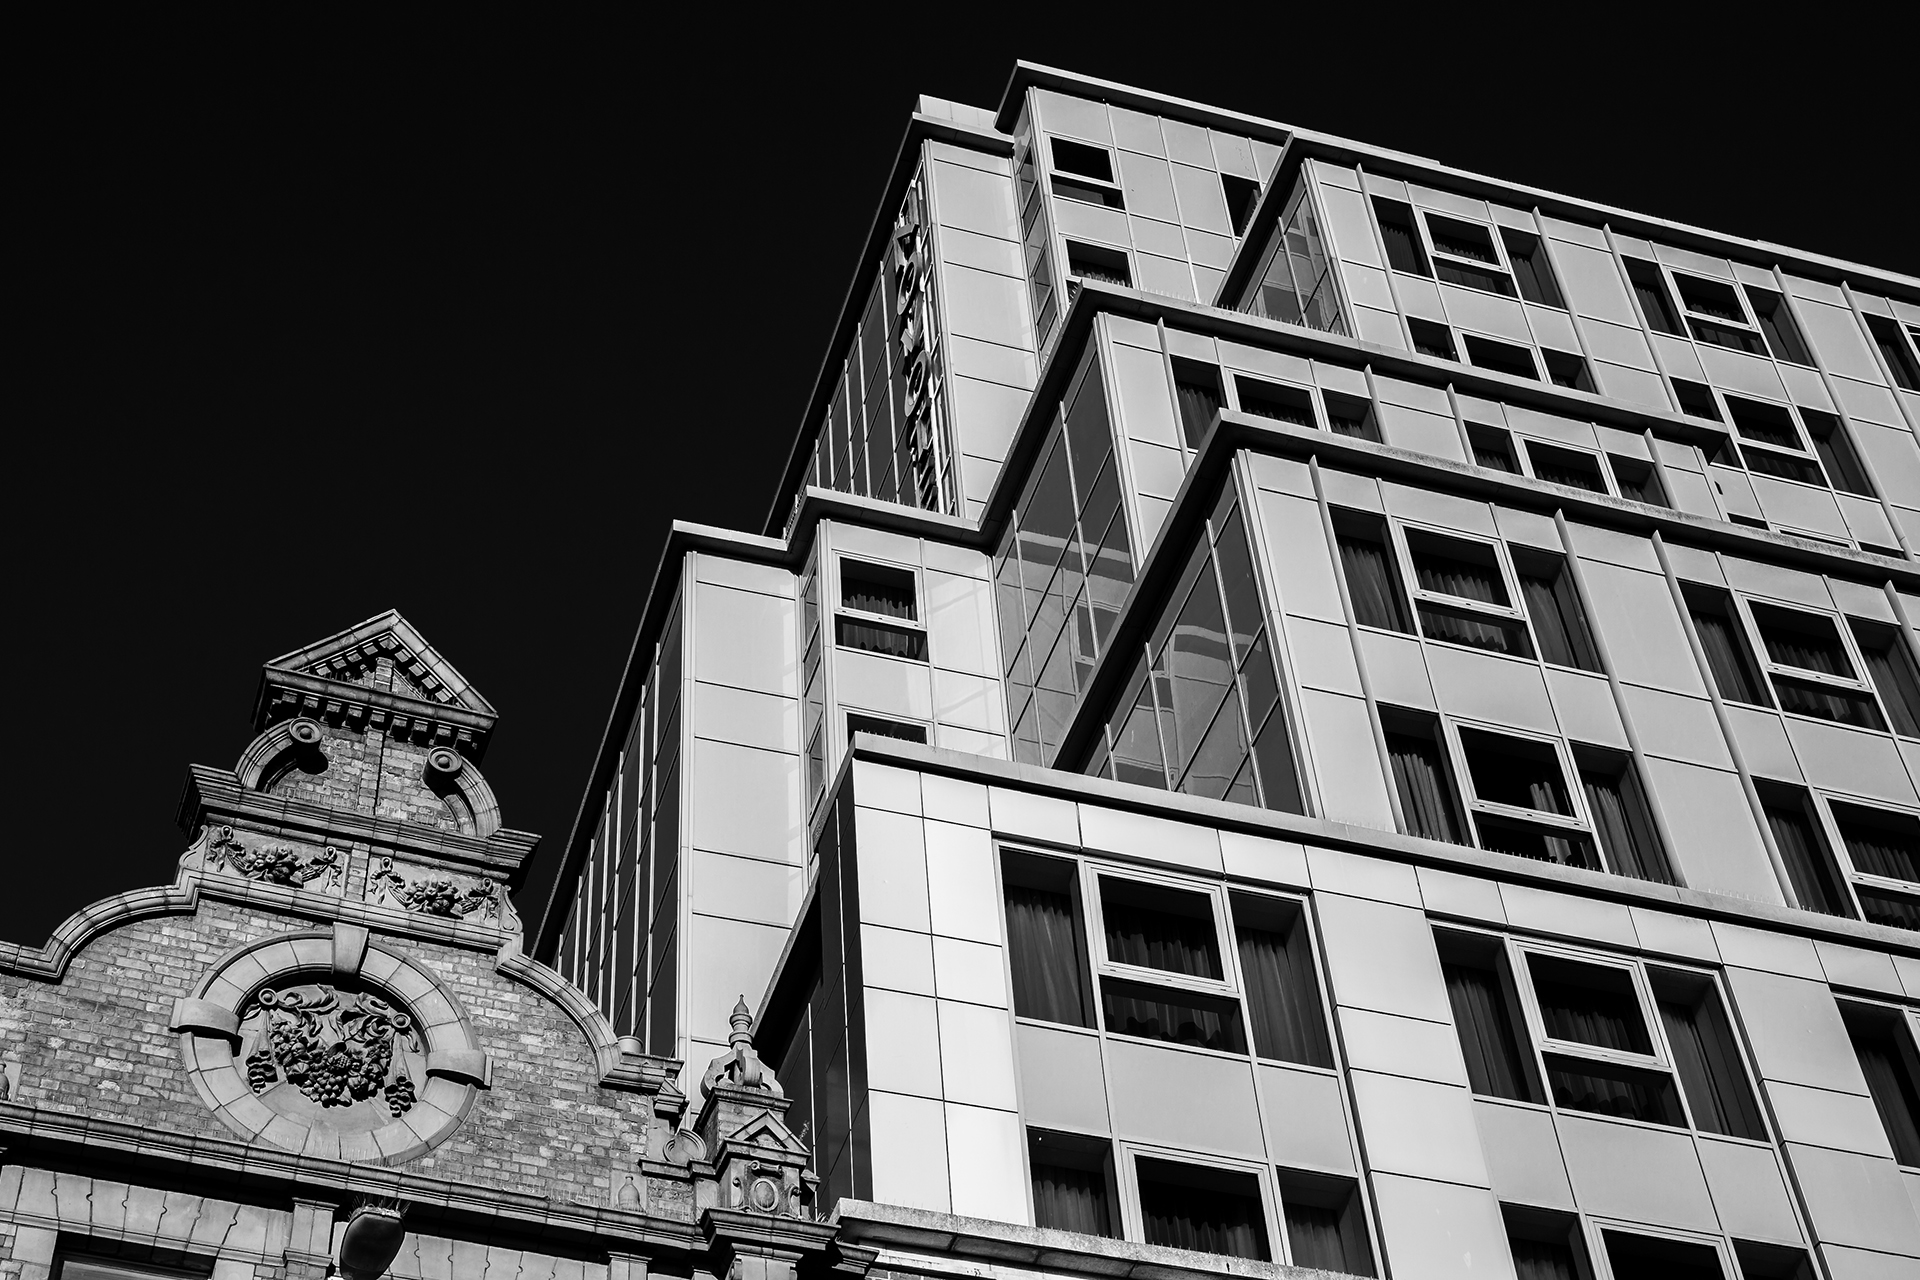 Friar Street, Reading : architecture